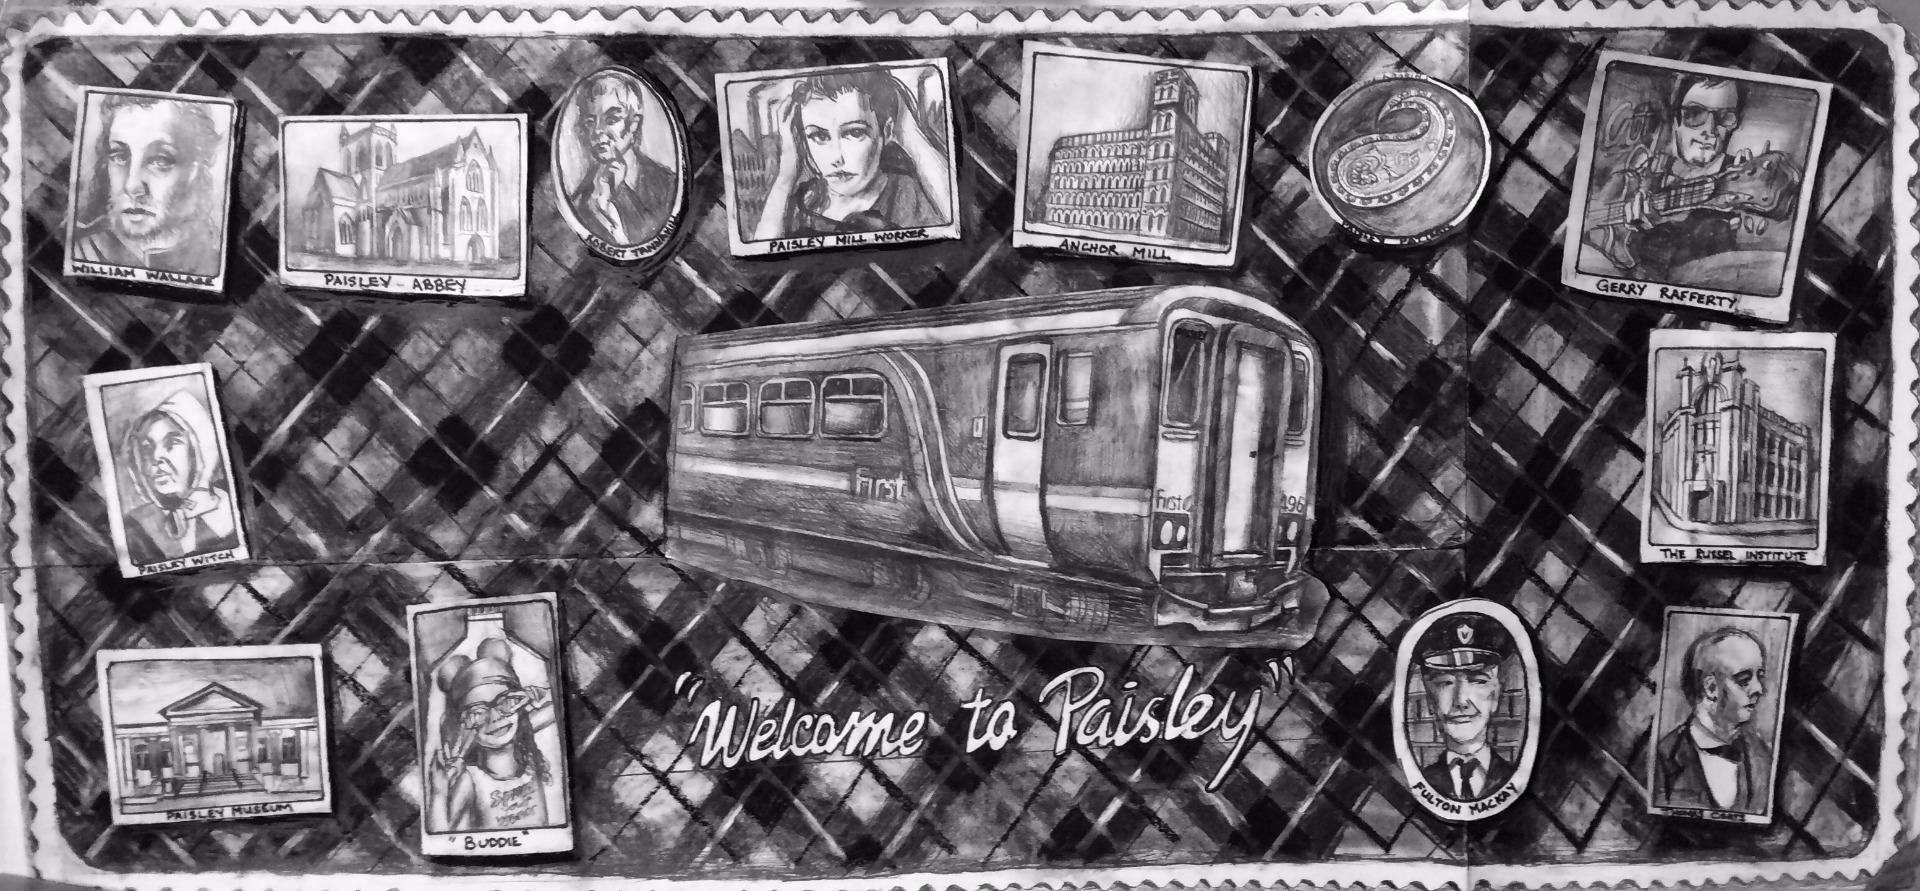 New Paisley artwork to welcome arrivals at Paisley Gilmour Street Station